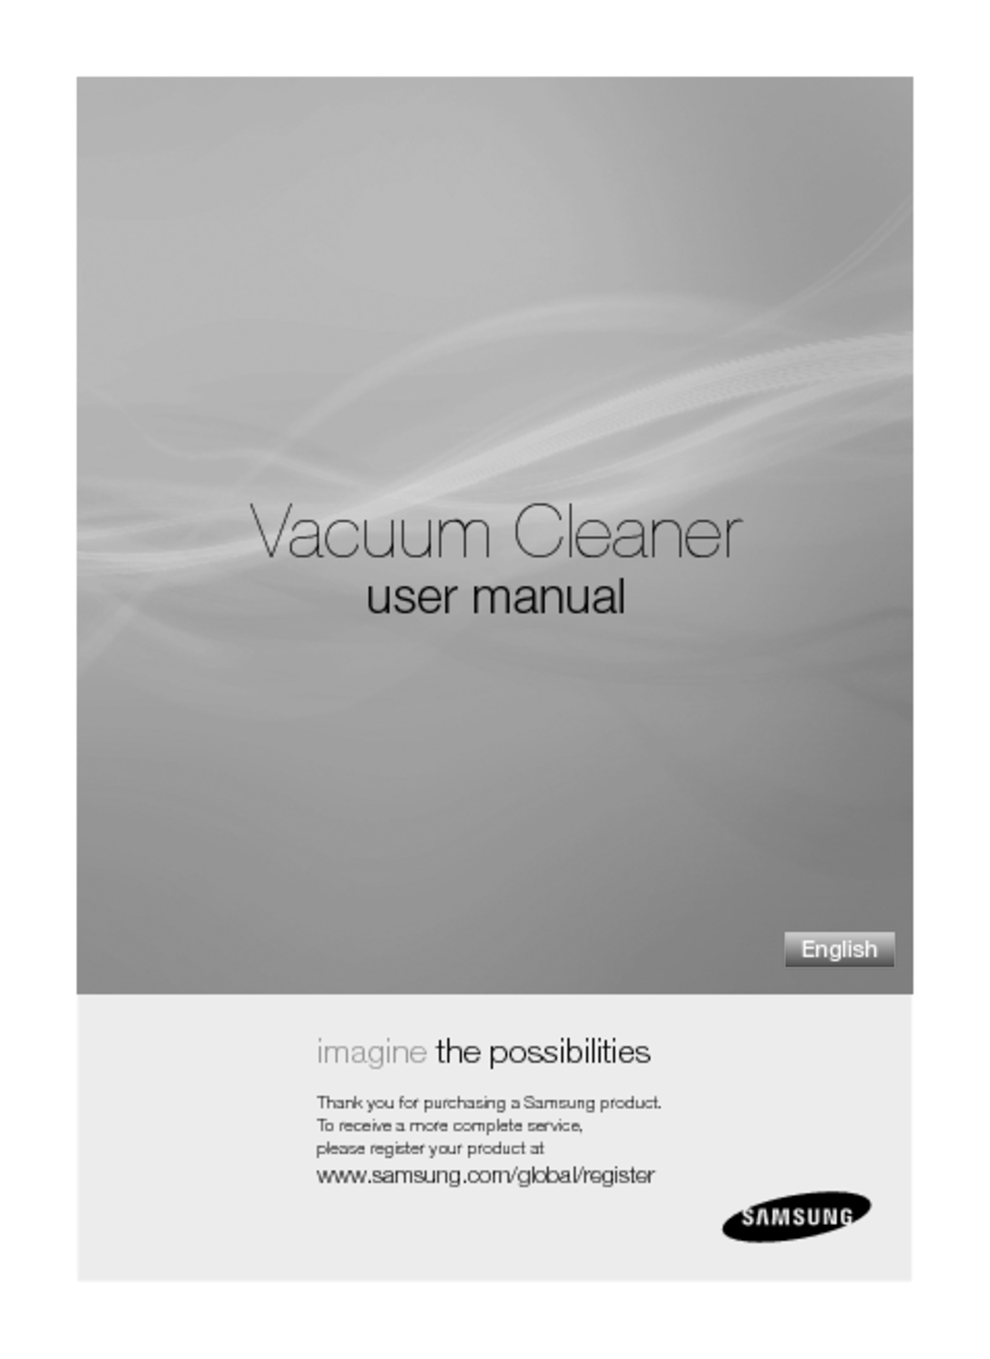 Vacuum cleaner users guides from vacuum cleaner dj68 00264b manuals fandeluxe Choice Image